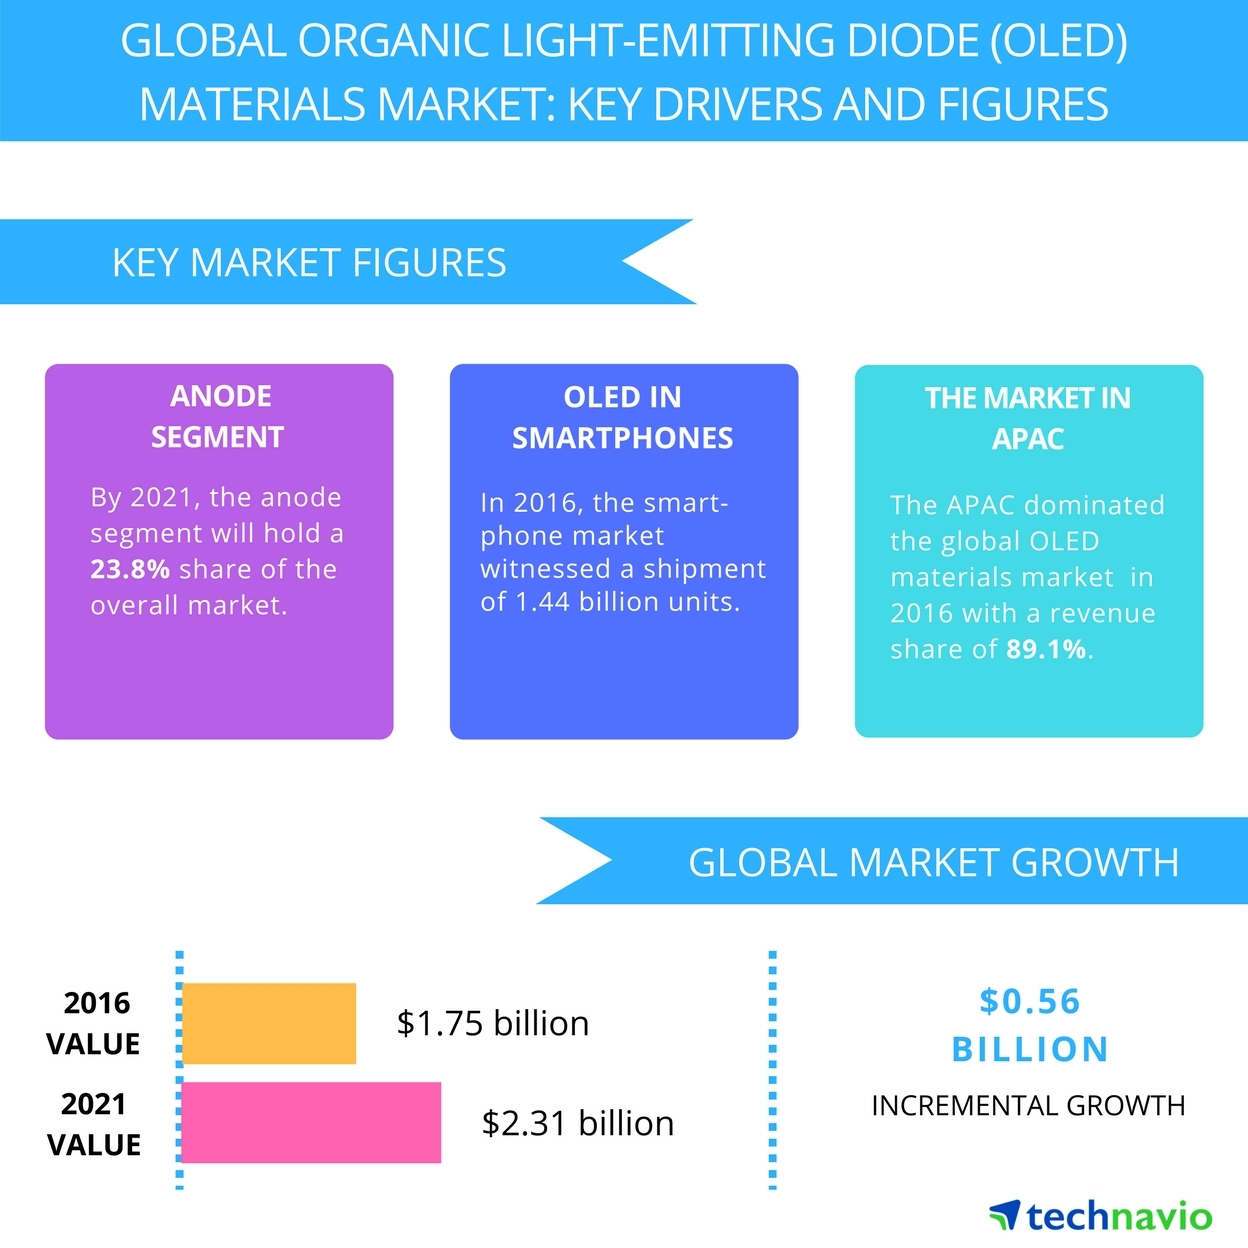 Technavio has published a new report on the global organic light-emitting diode (OLED) materials market from 2017-2021. (Graphic: Business Wire)